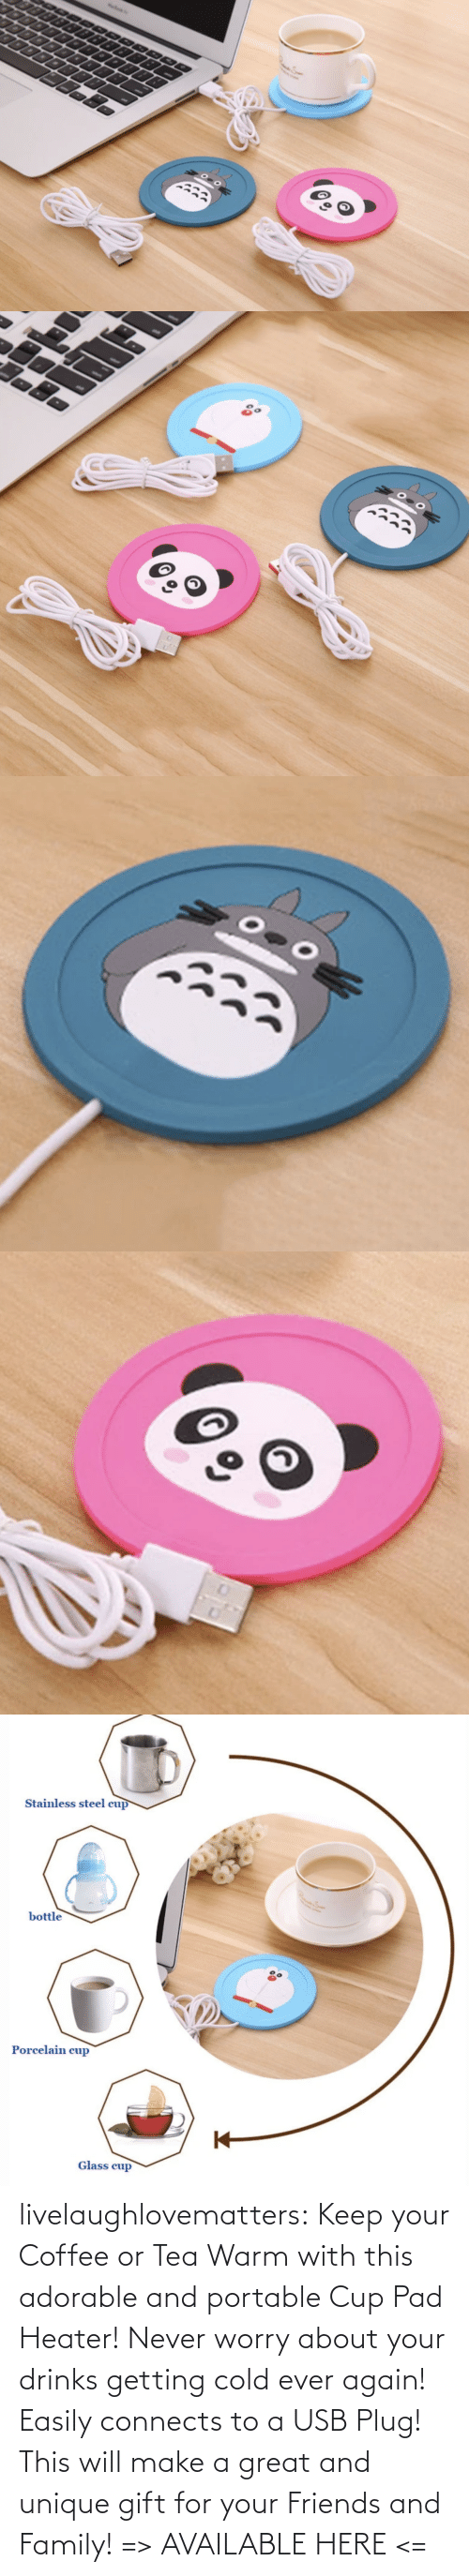 Cold: livelaughlovematters: Keep your Coffee or Tea Warm with this adorable and portable Cup Pad Heater! Never worry about your drinks getting cold ever again! Easily connects to a USB Plug! This will make a great and unique gift for your Friends and Family! => AVAILABLE HERE <=